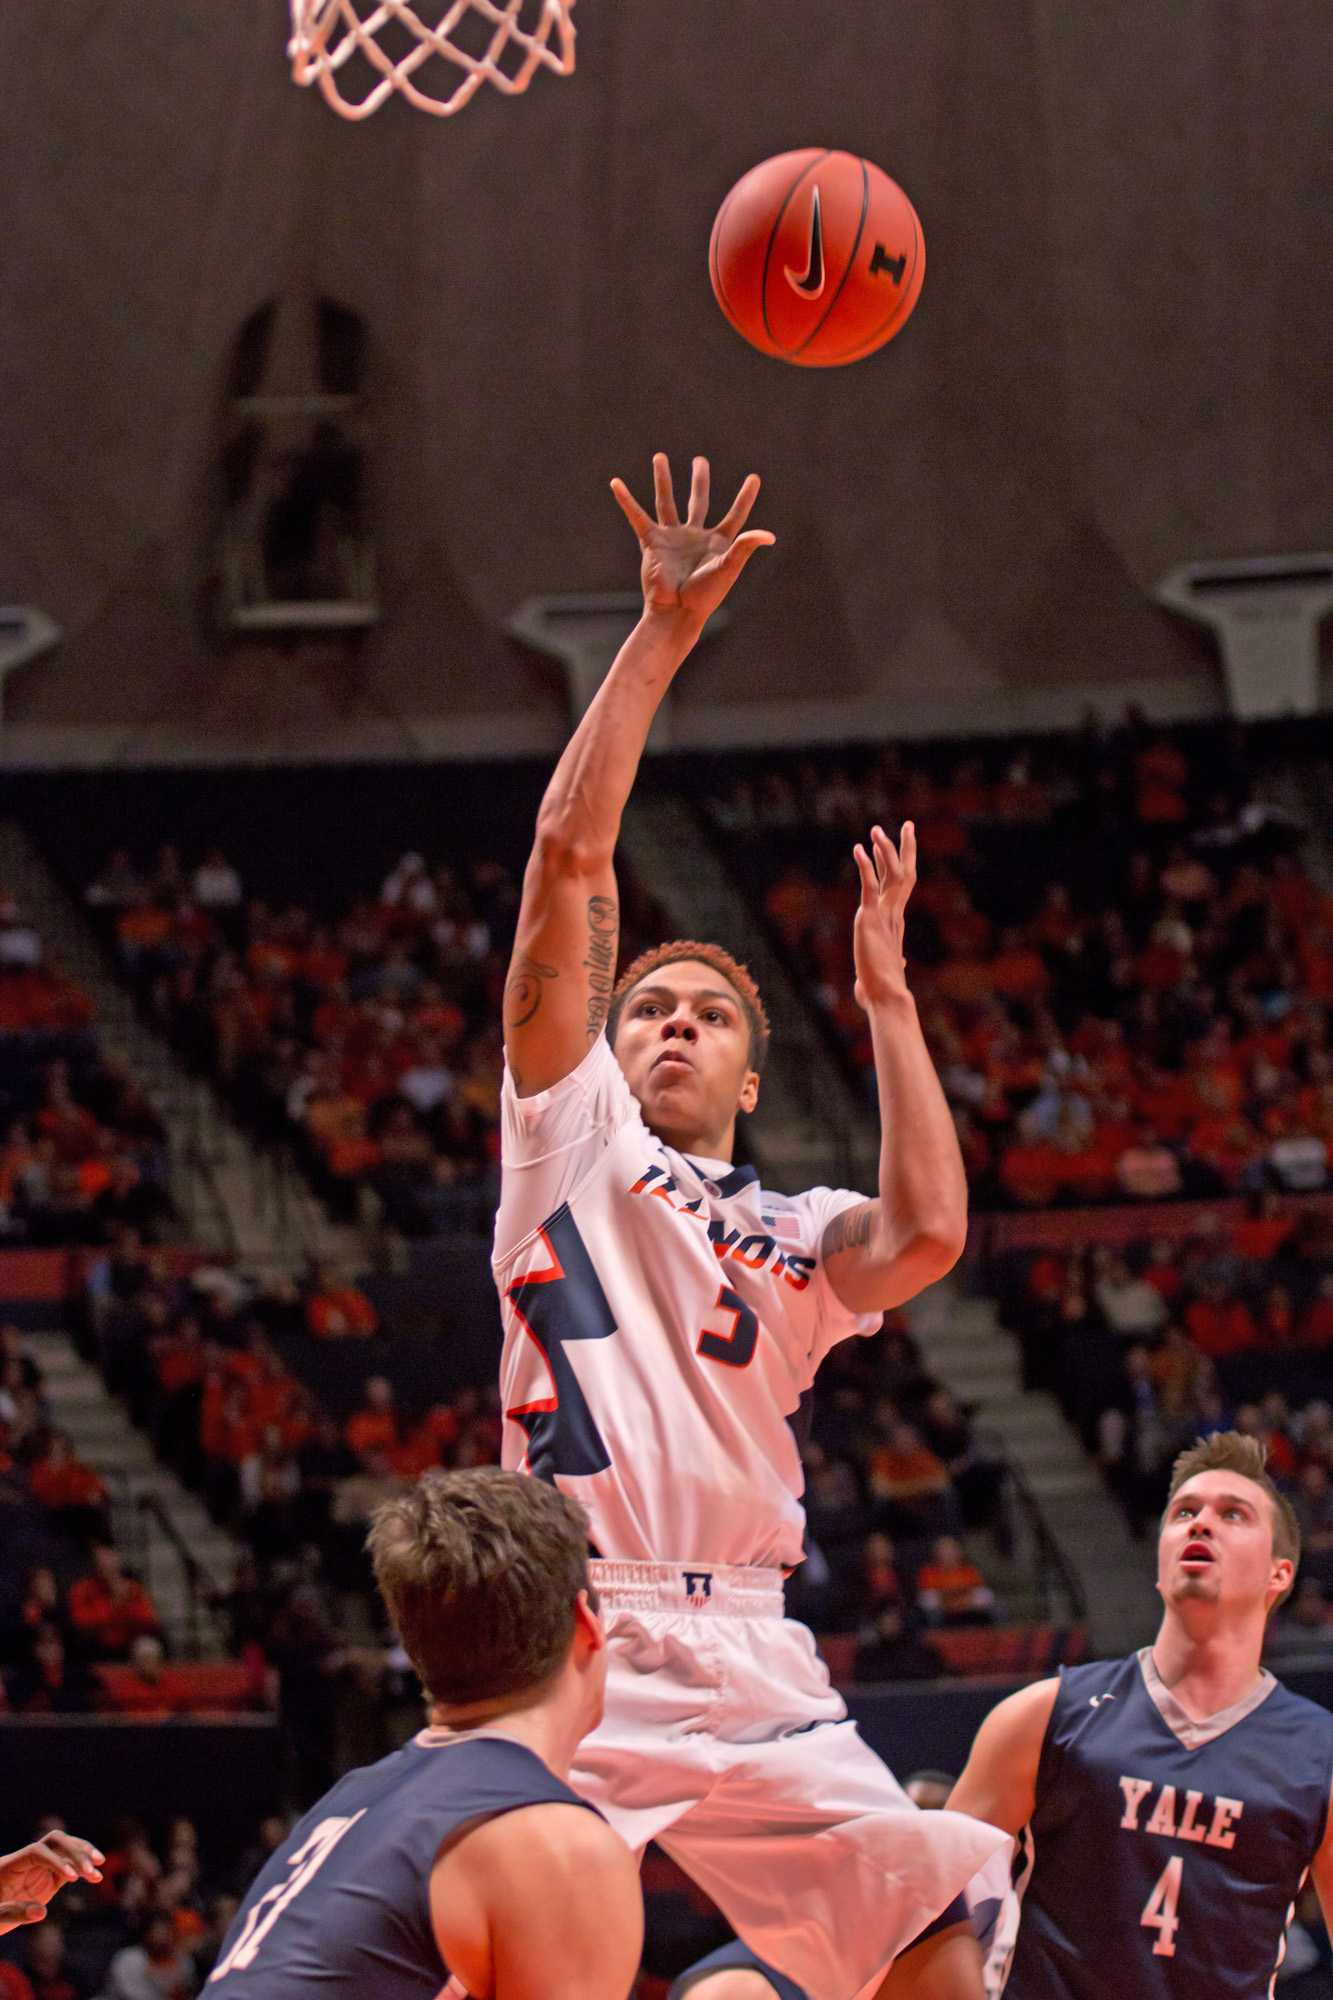 Illinois guard Khalid Lewis(3) takes a jump shot during the game against Yale at the State Farm Center on Wednesday, December 9, 2015. The Illini won 69-65.